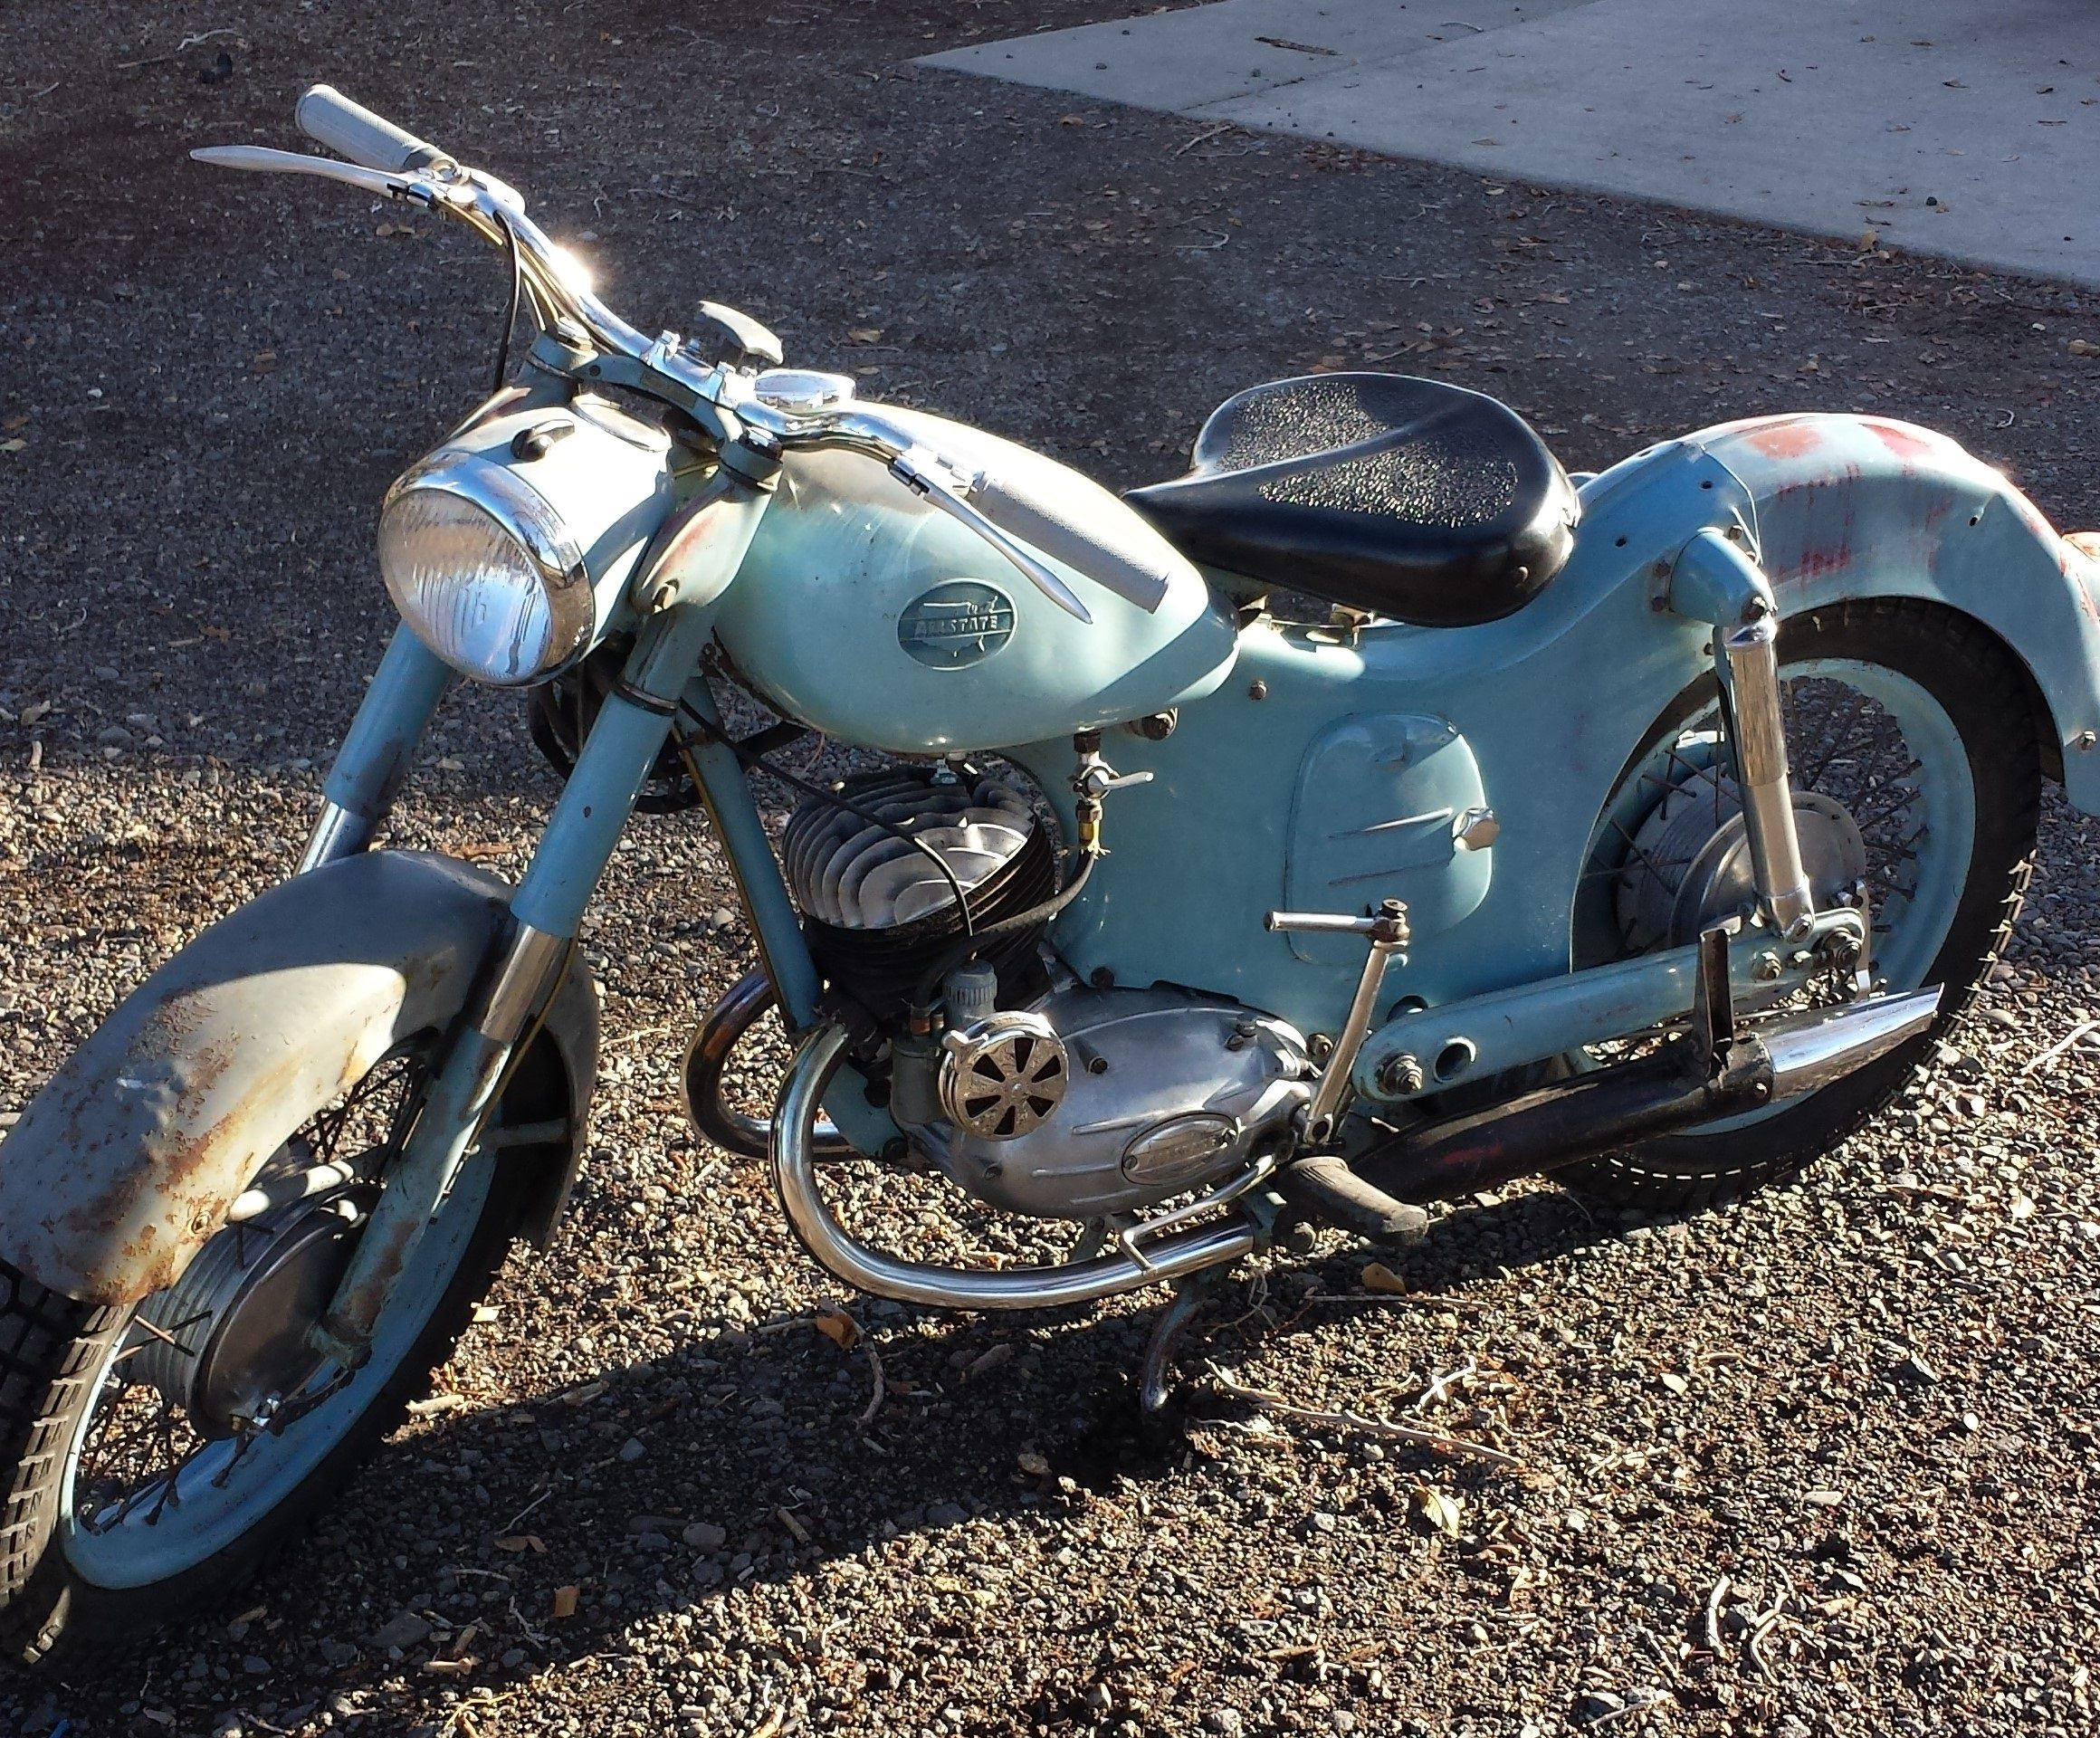 For Sale By Customer Vintage Motorcycles Motorcycle Motorbikes